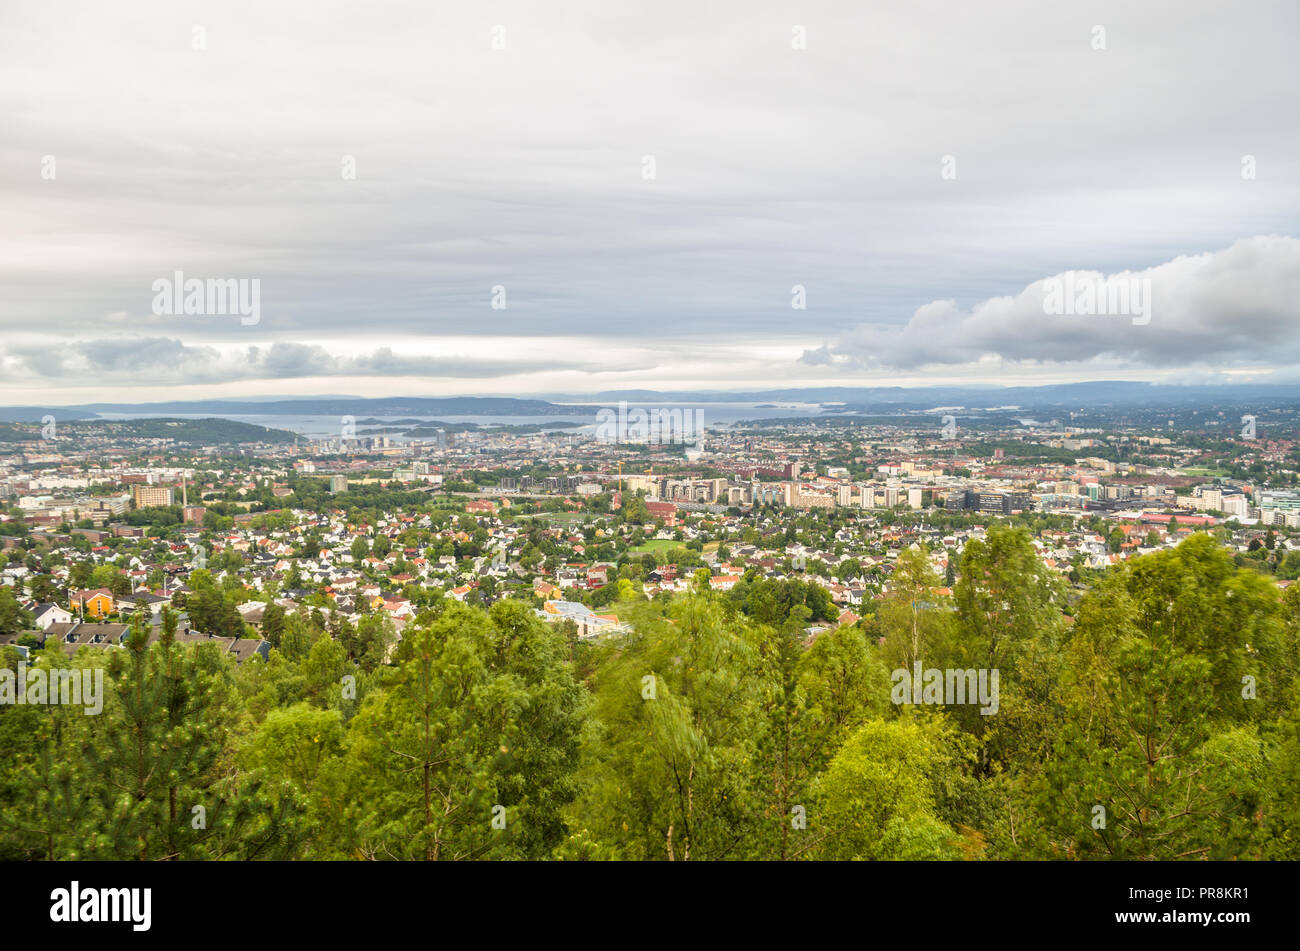 Central part of Oslo, viewed from Grefsenkollen viewpoint. Stock Photo